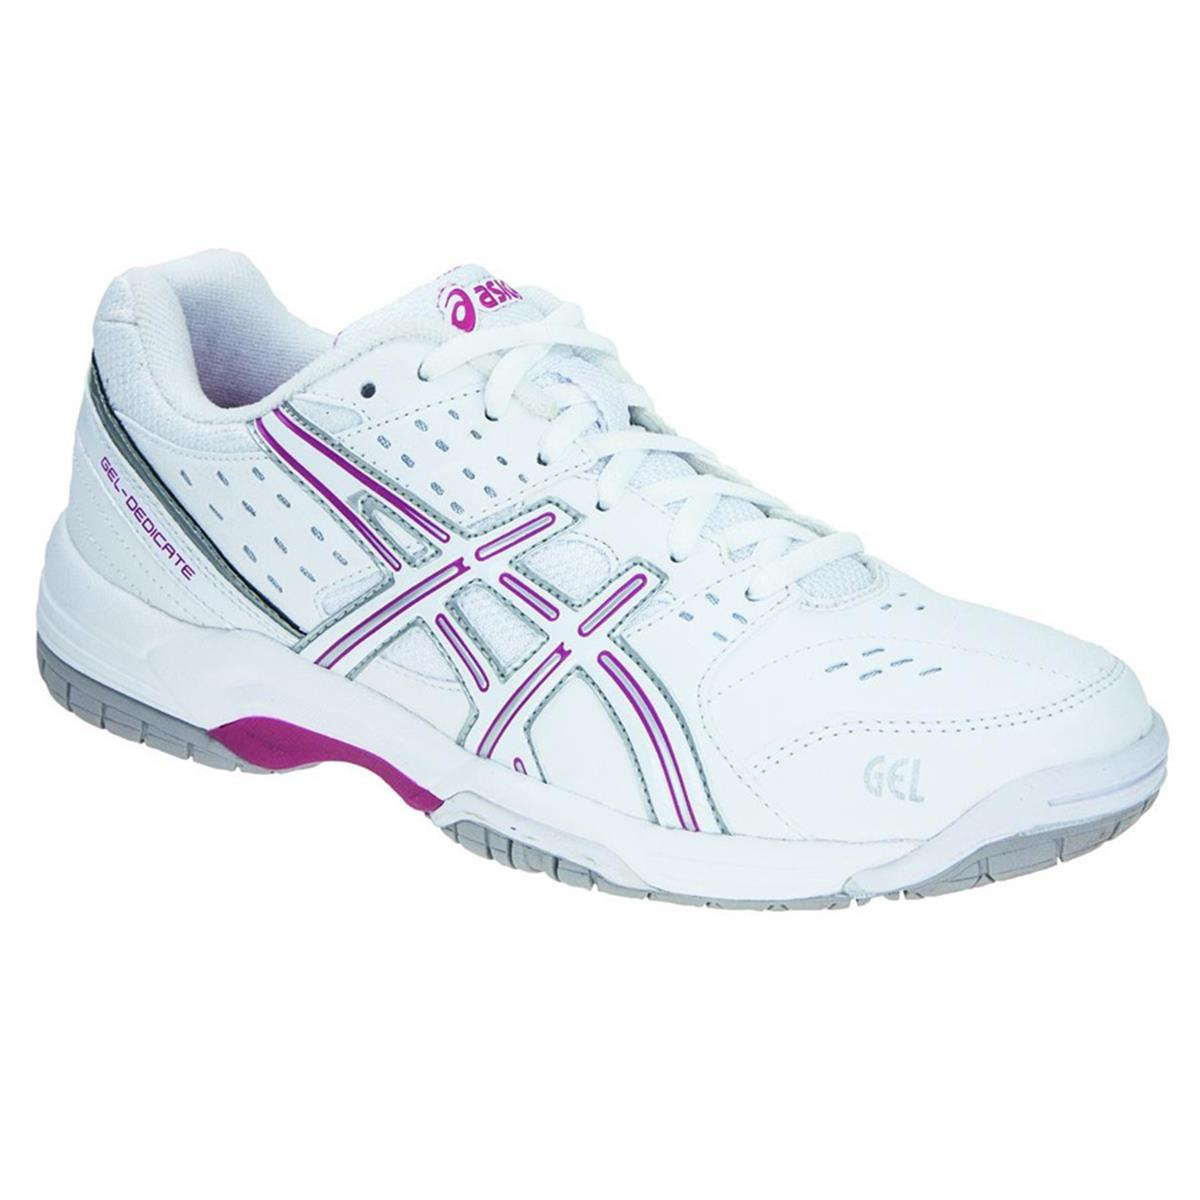 asics gel dedicate 3 court womens tennis shoes by